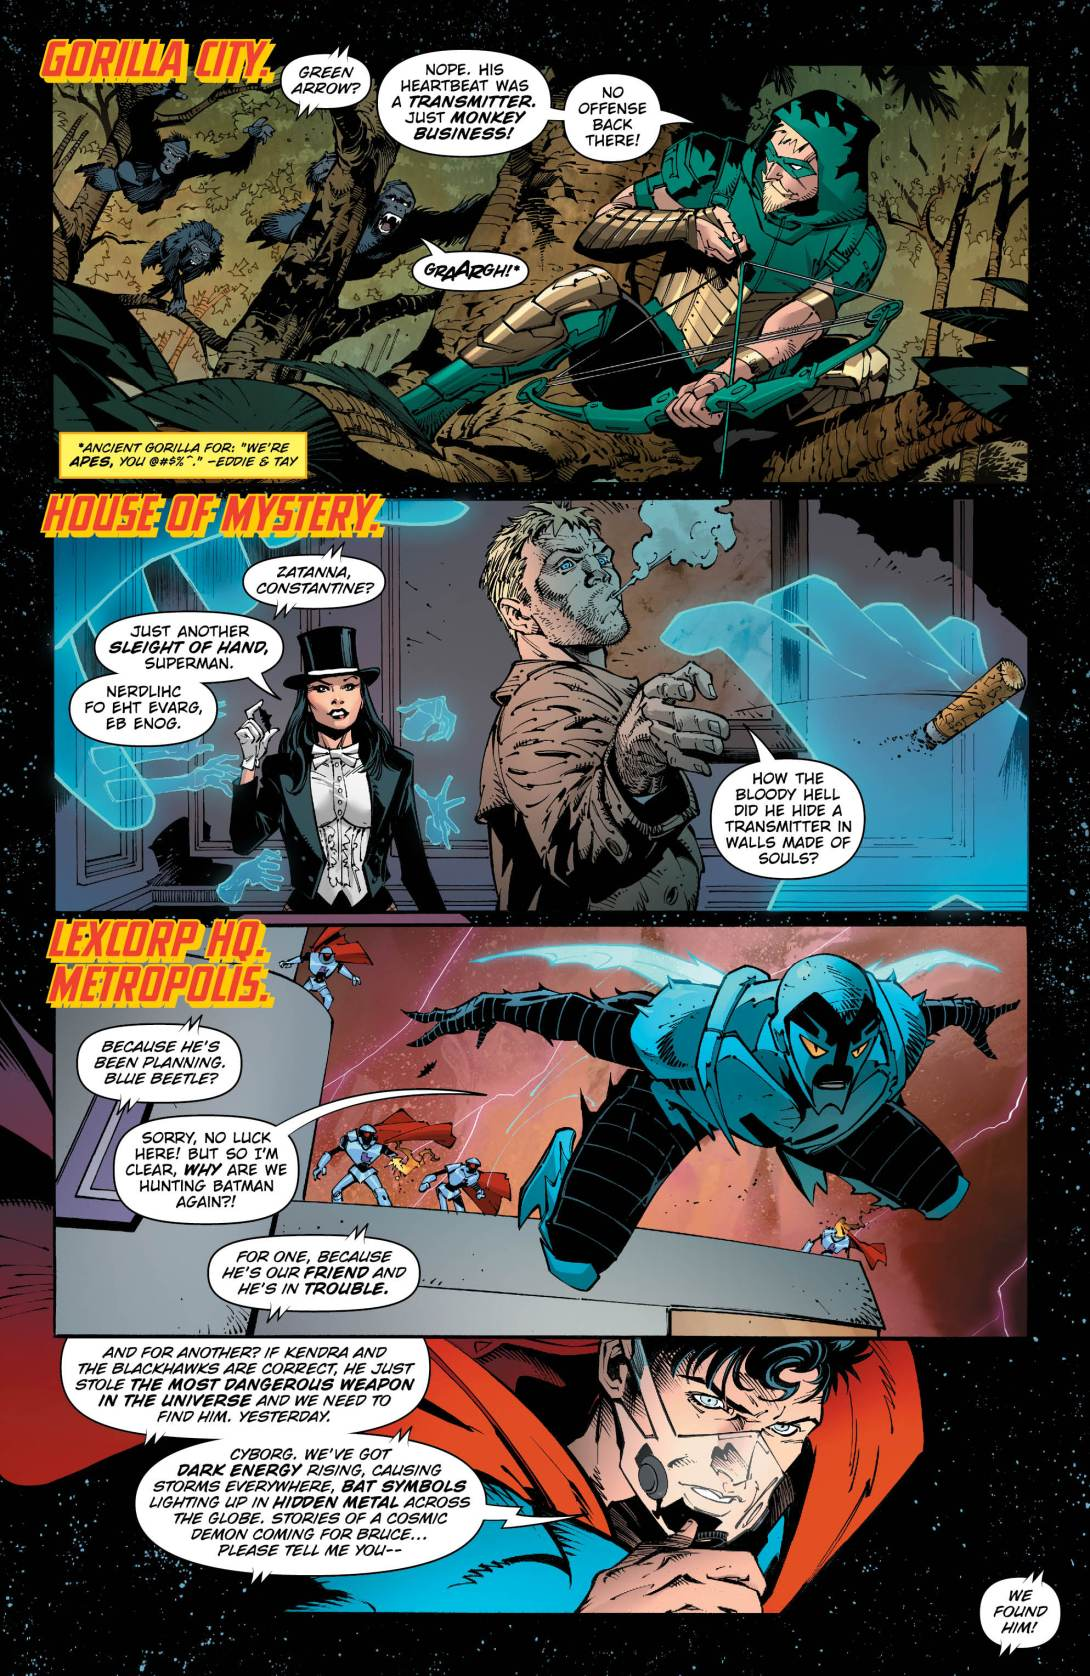 Metal 2 - Page 2 - DC Comics News